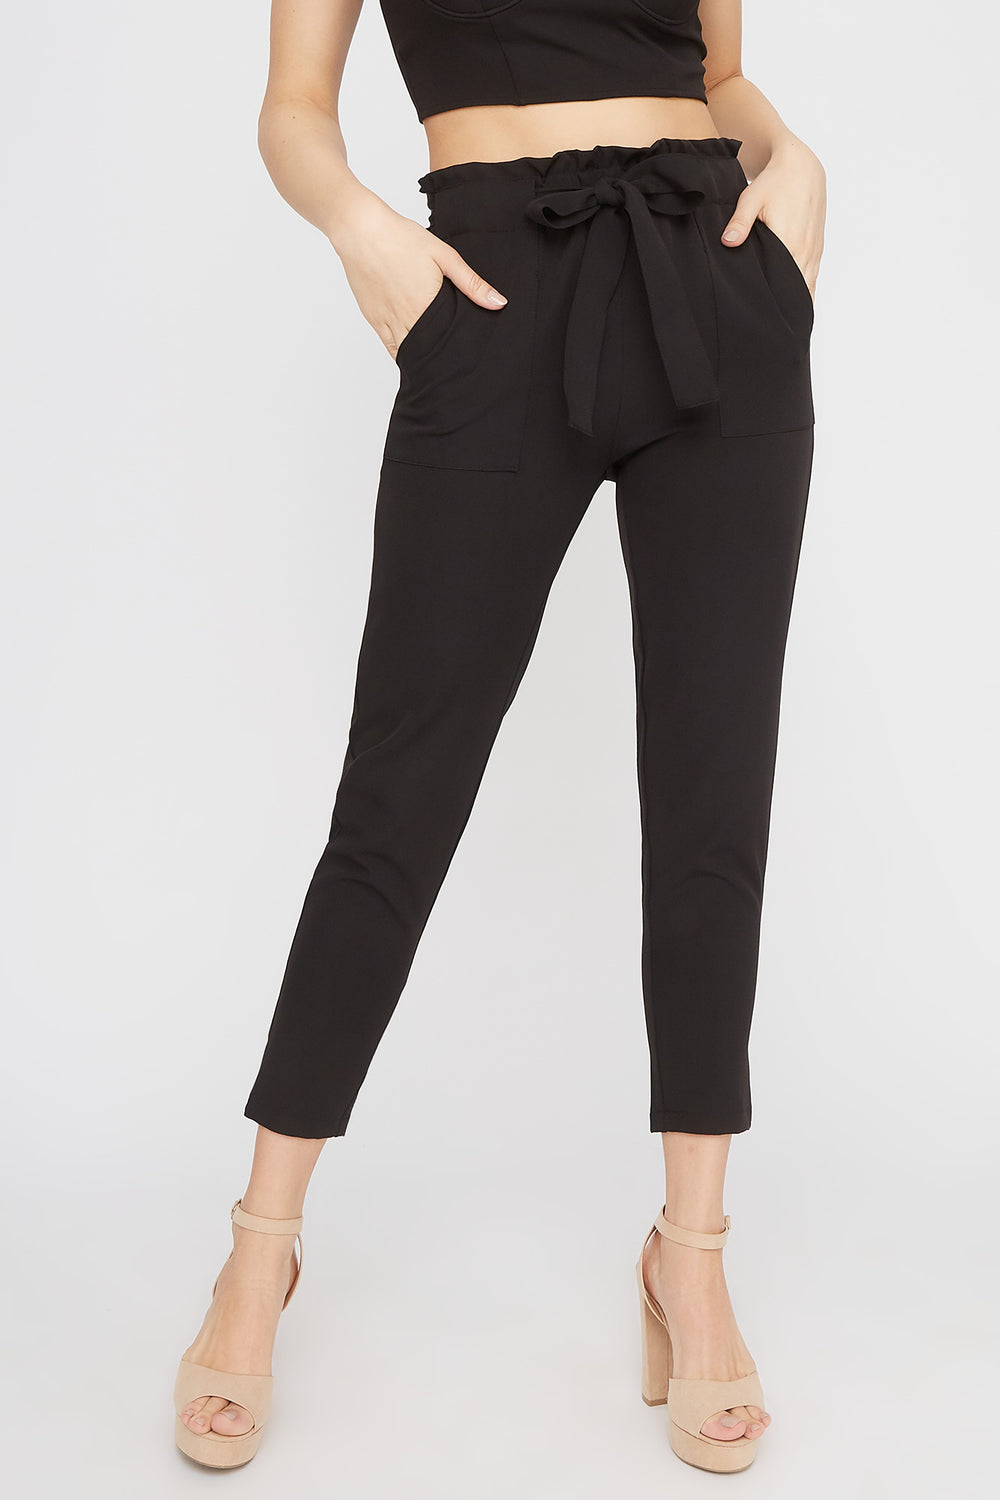 High-Rise Self-Tie Paperbag Skinny Pant Black